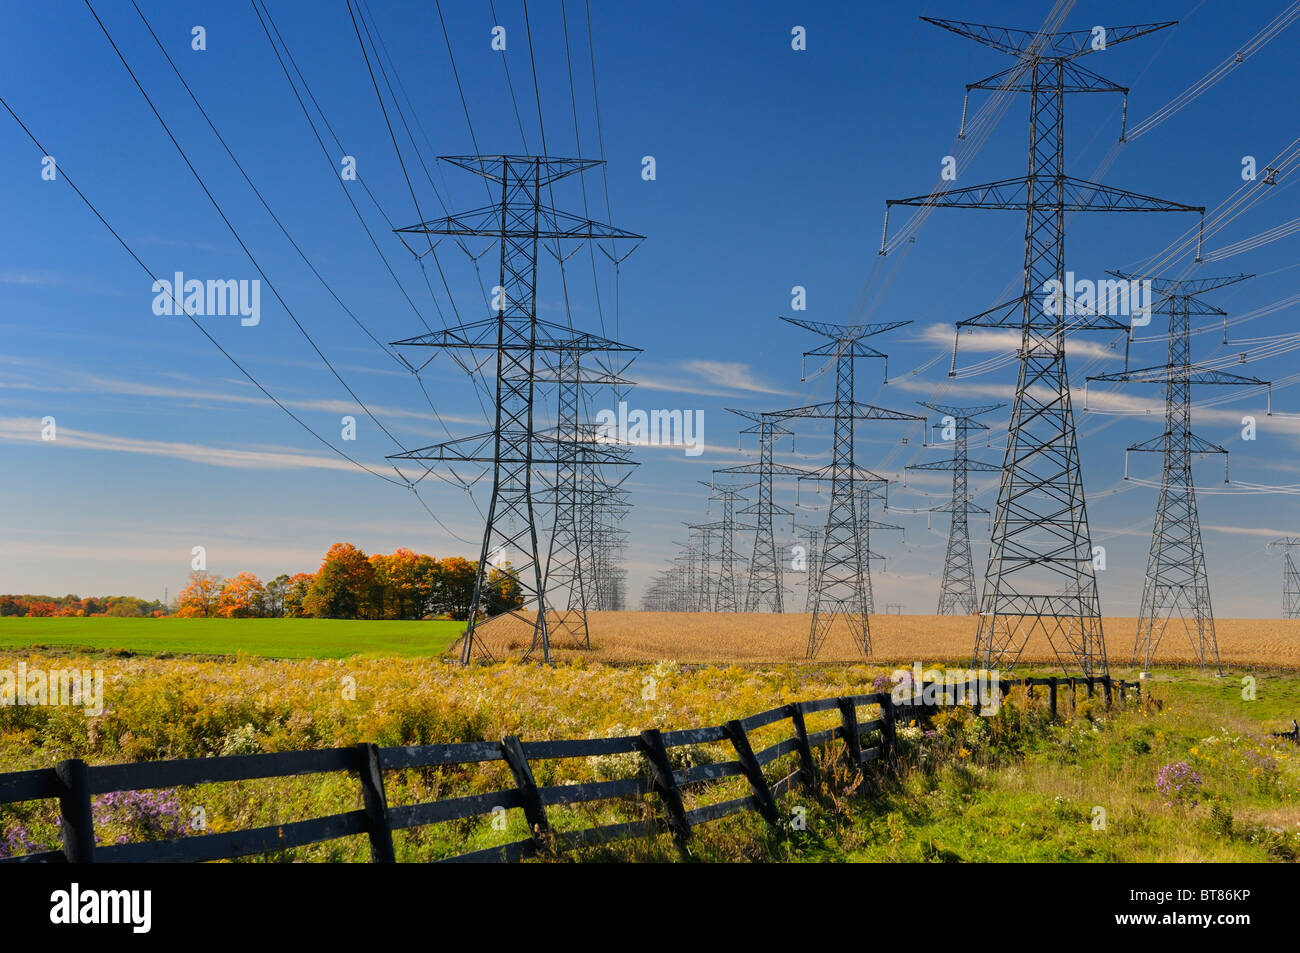 Hydro electric power line towers from the Pickering Nuclear Power Plant running through farm fields of Ontario - Stock Image